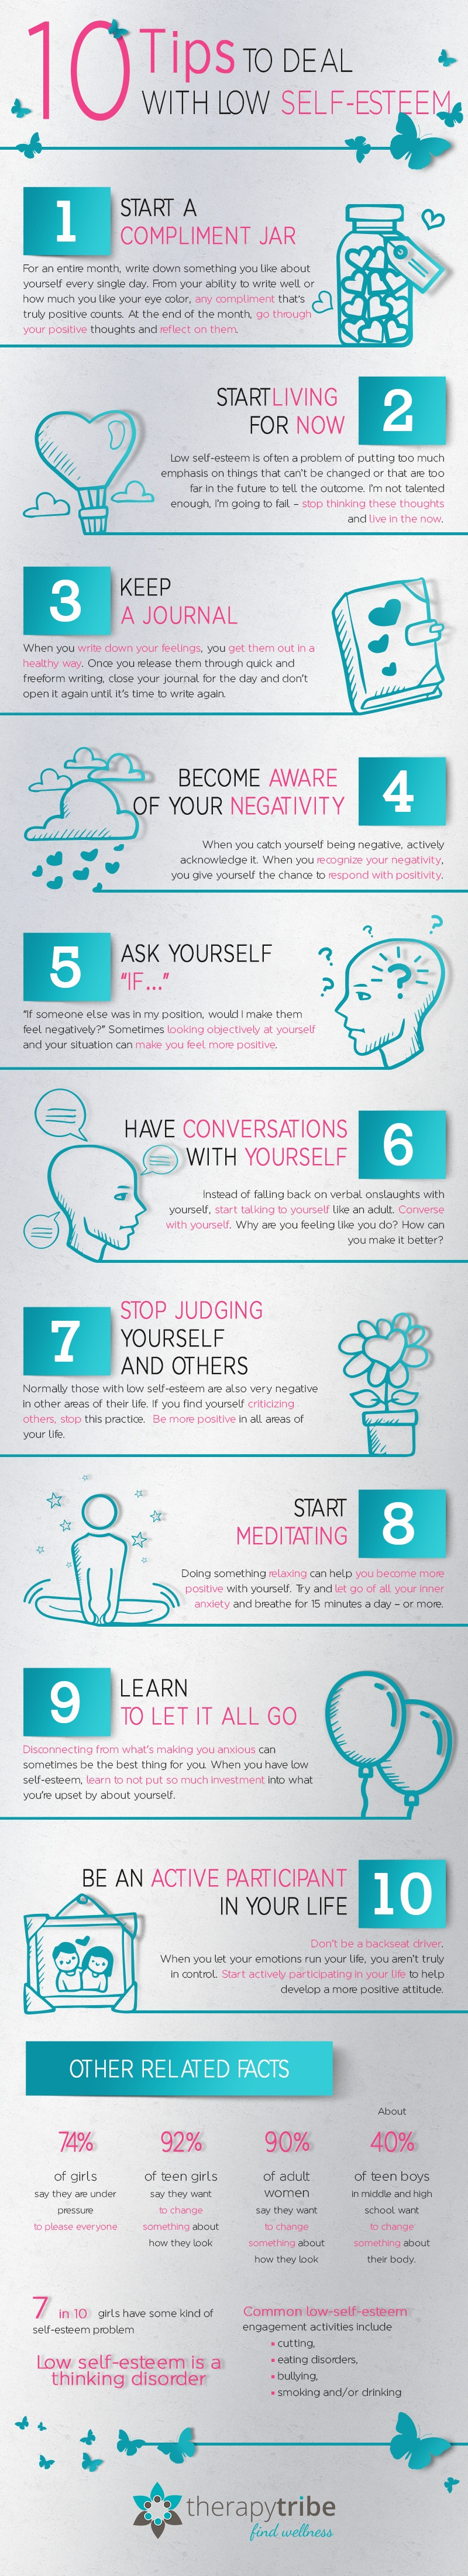 10 Tips to Deal with Low Self-Esteem